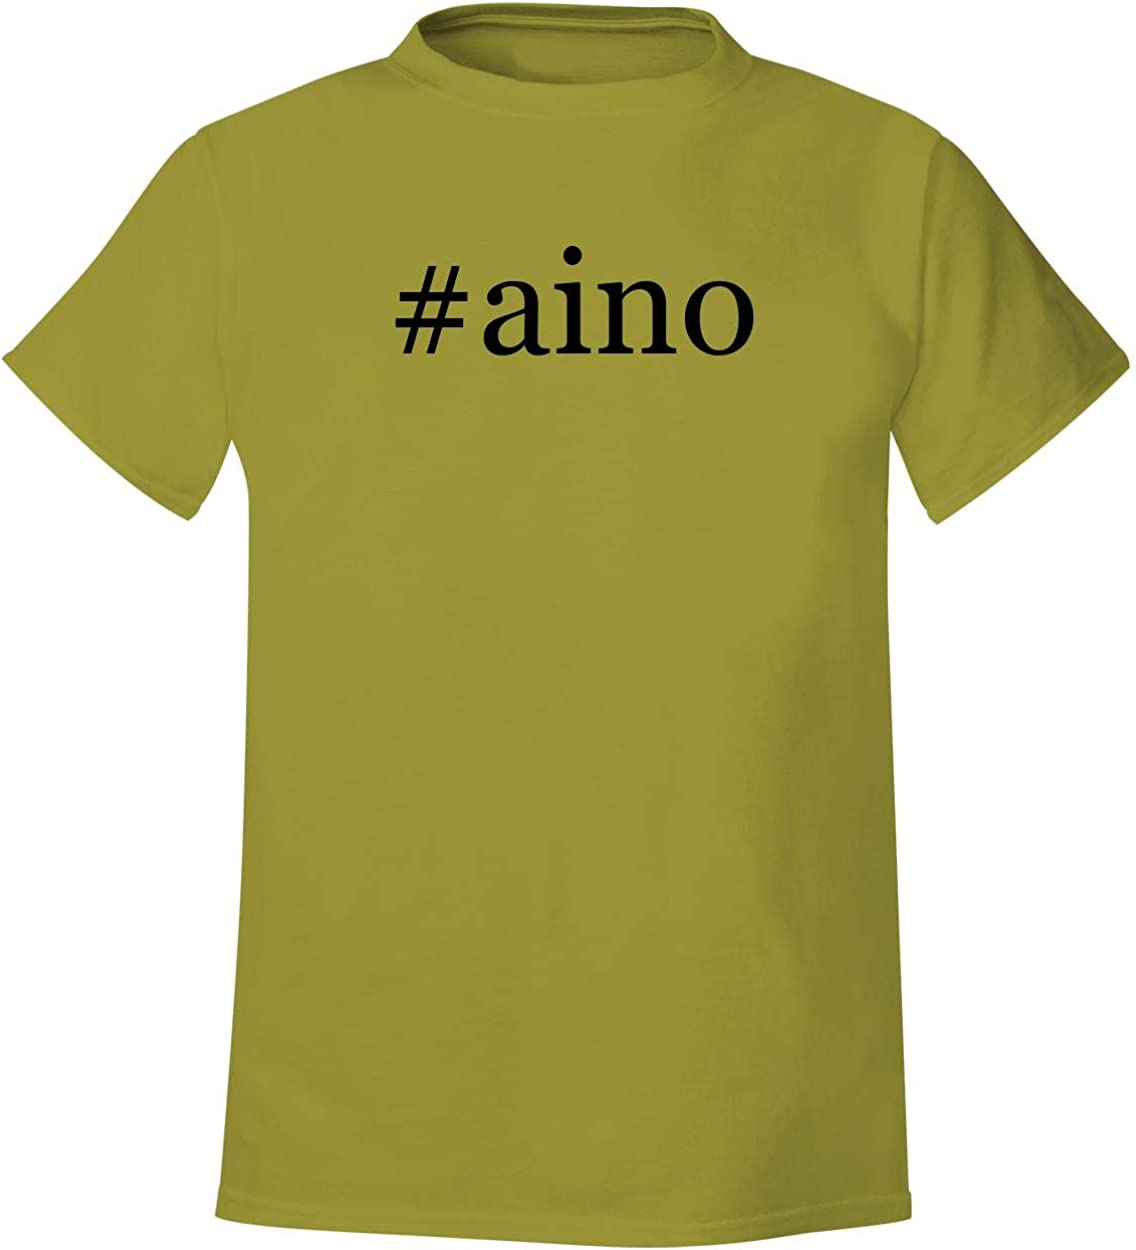 #aino - Men's Hashtag Soft & Comfortable T-Shirt 51bBlP0OlCL